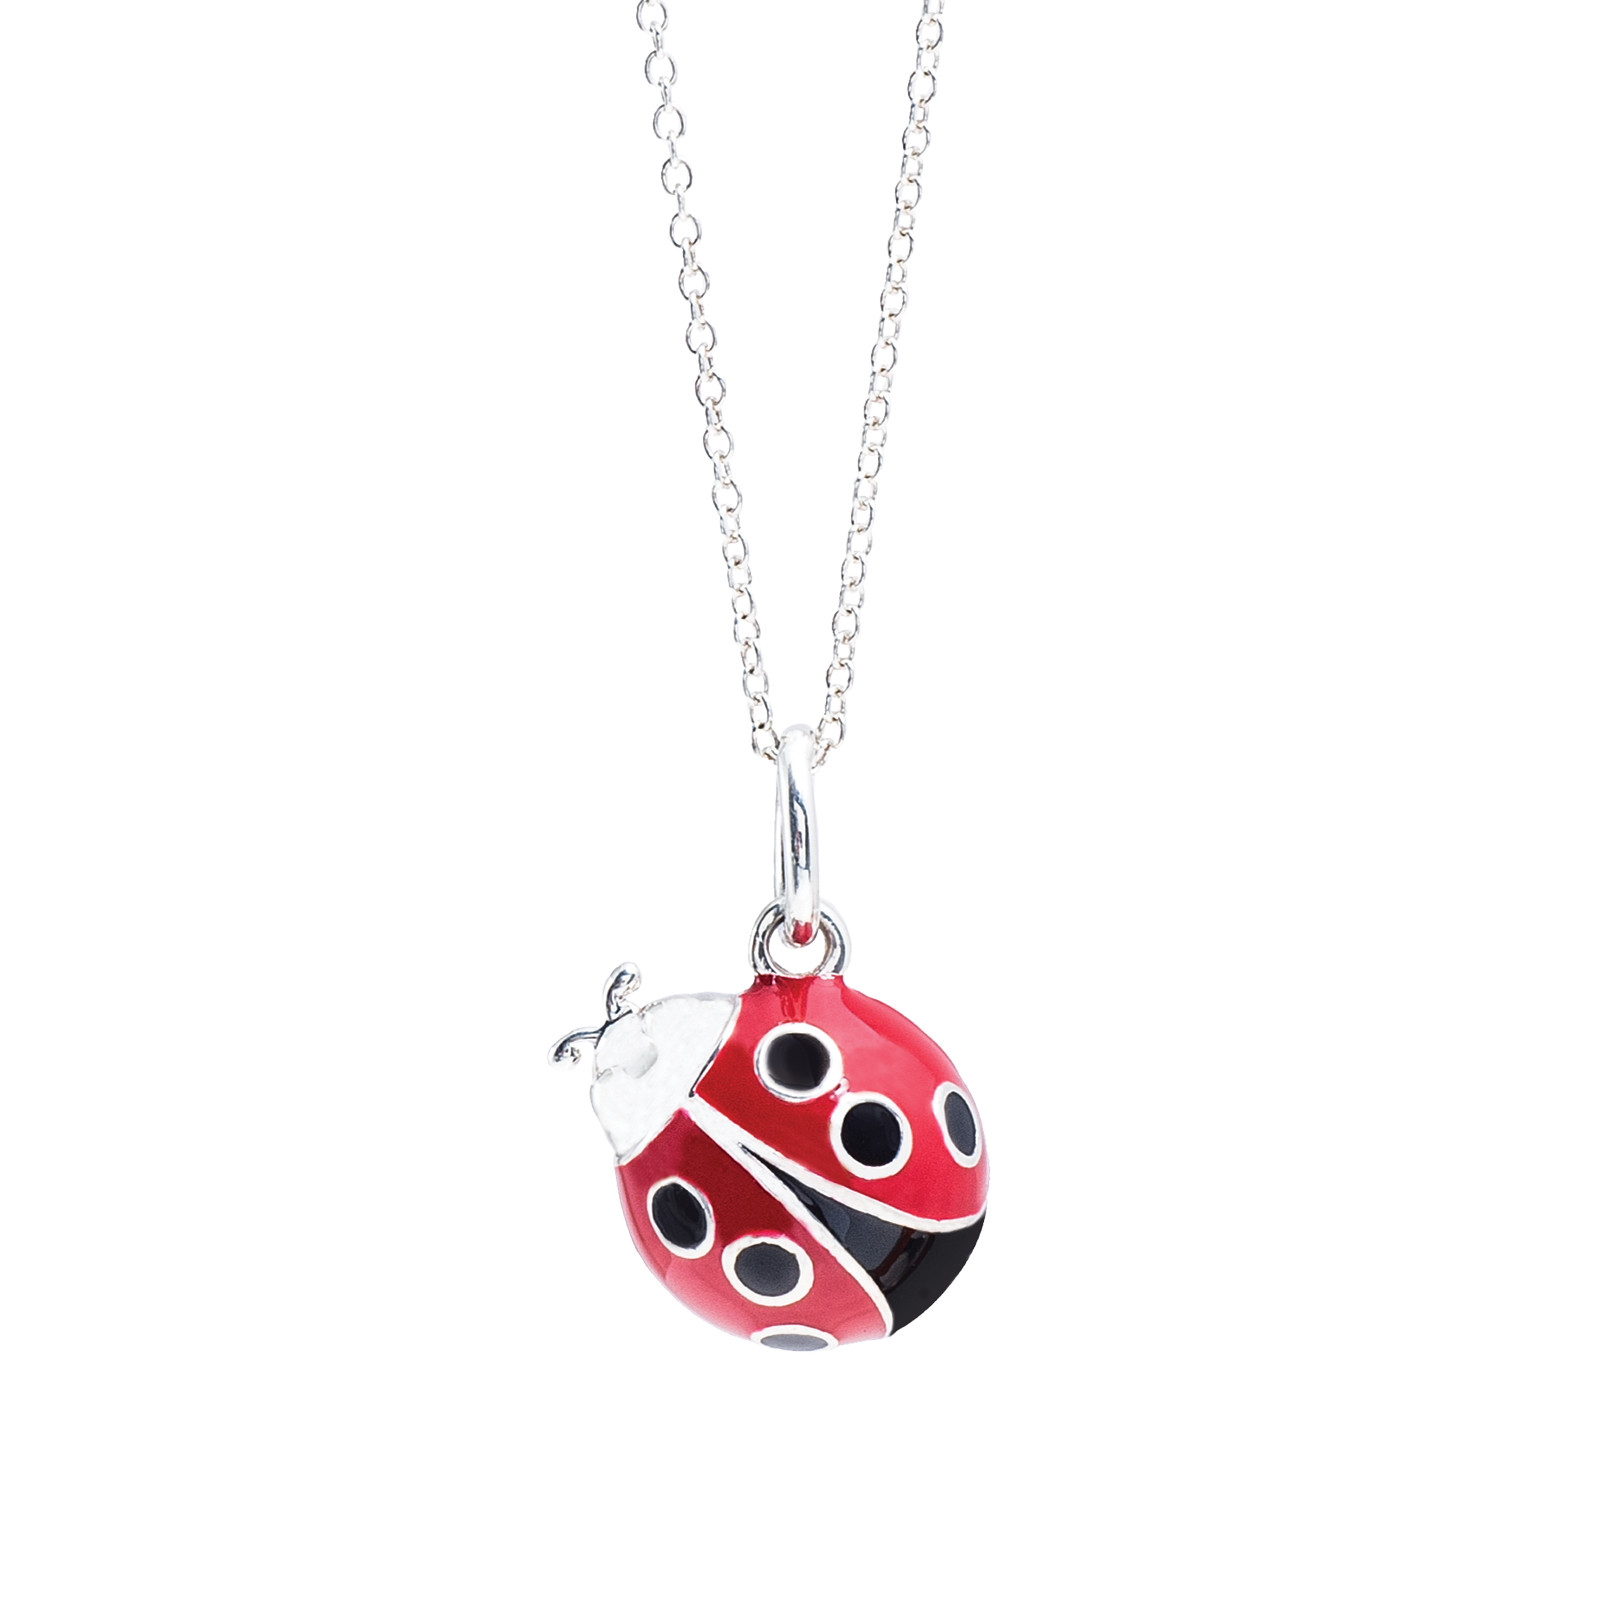 Vintage Tiffany & Co. Red Enamel Lady Bug Necklace